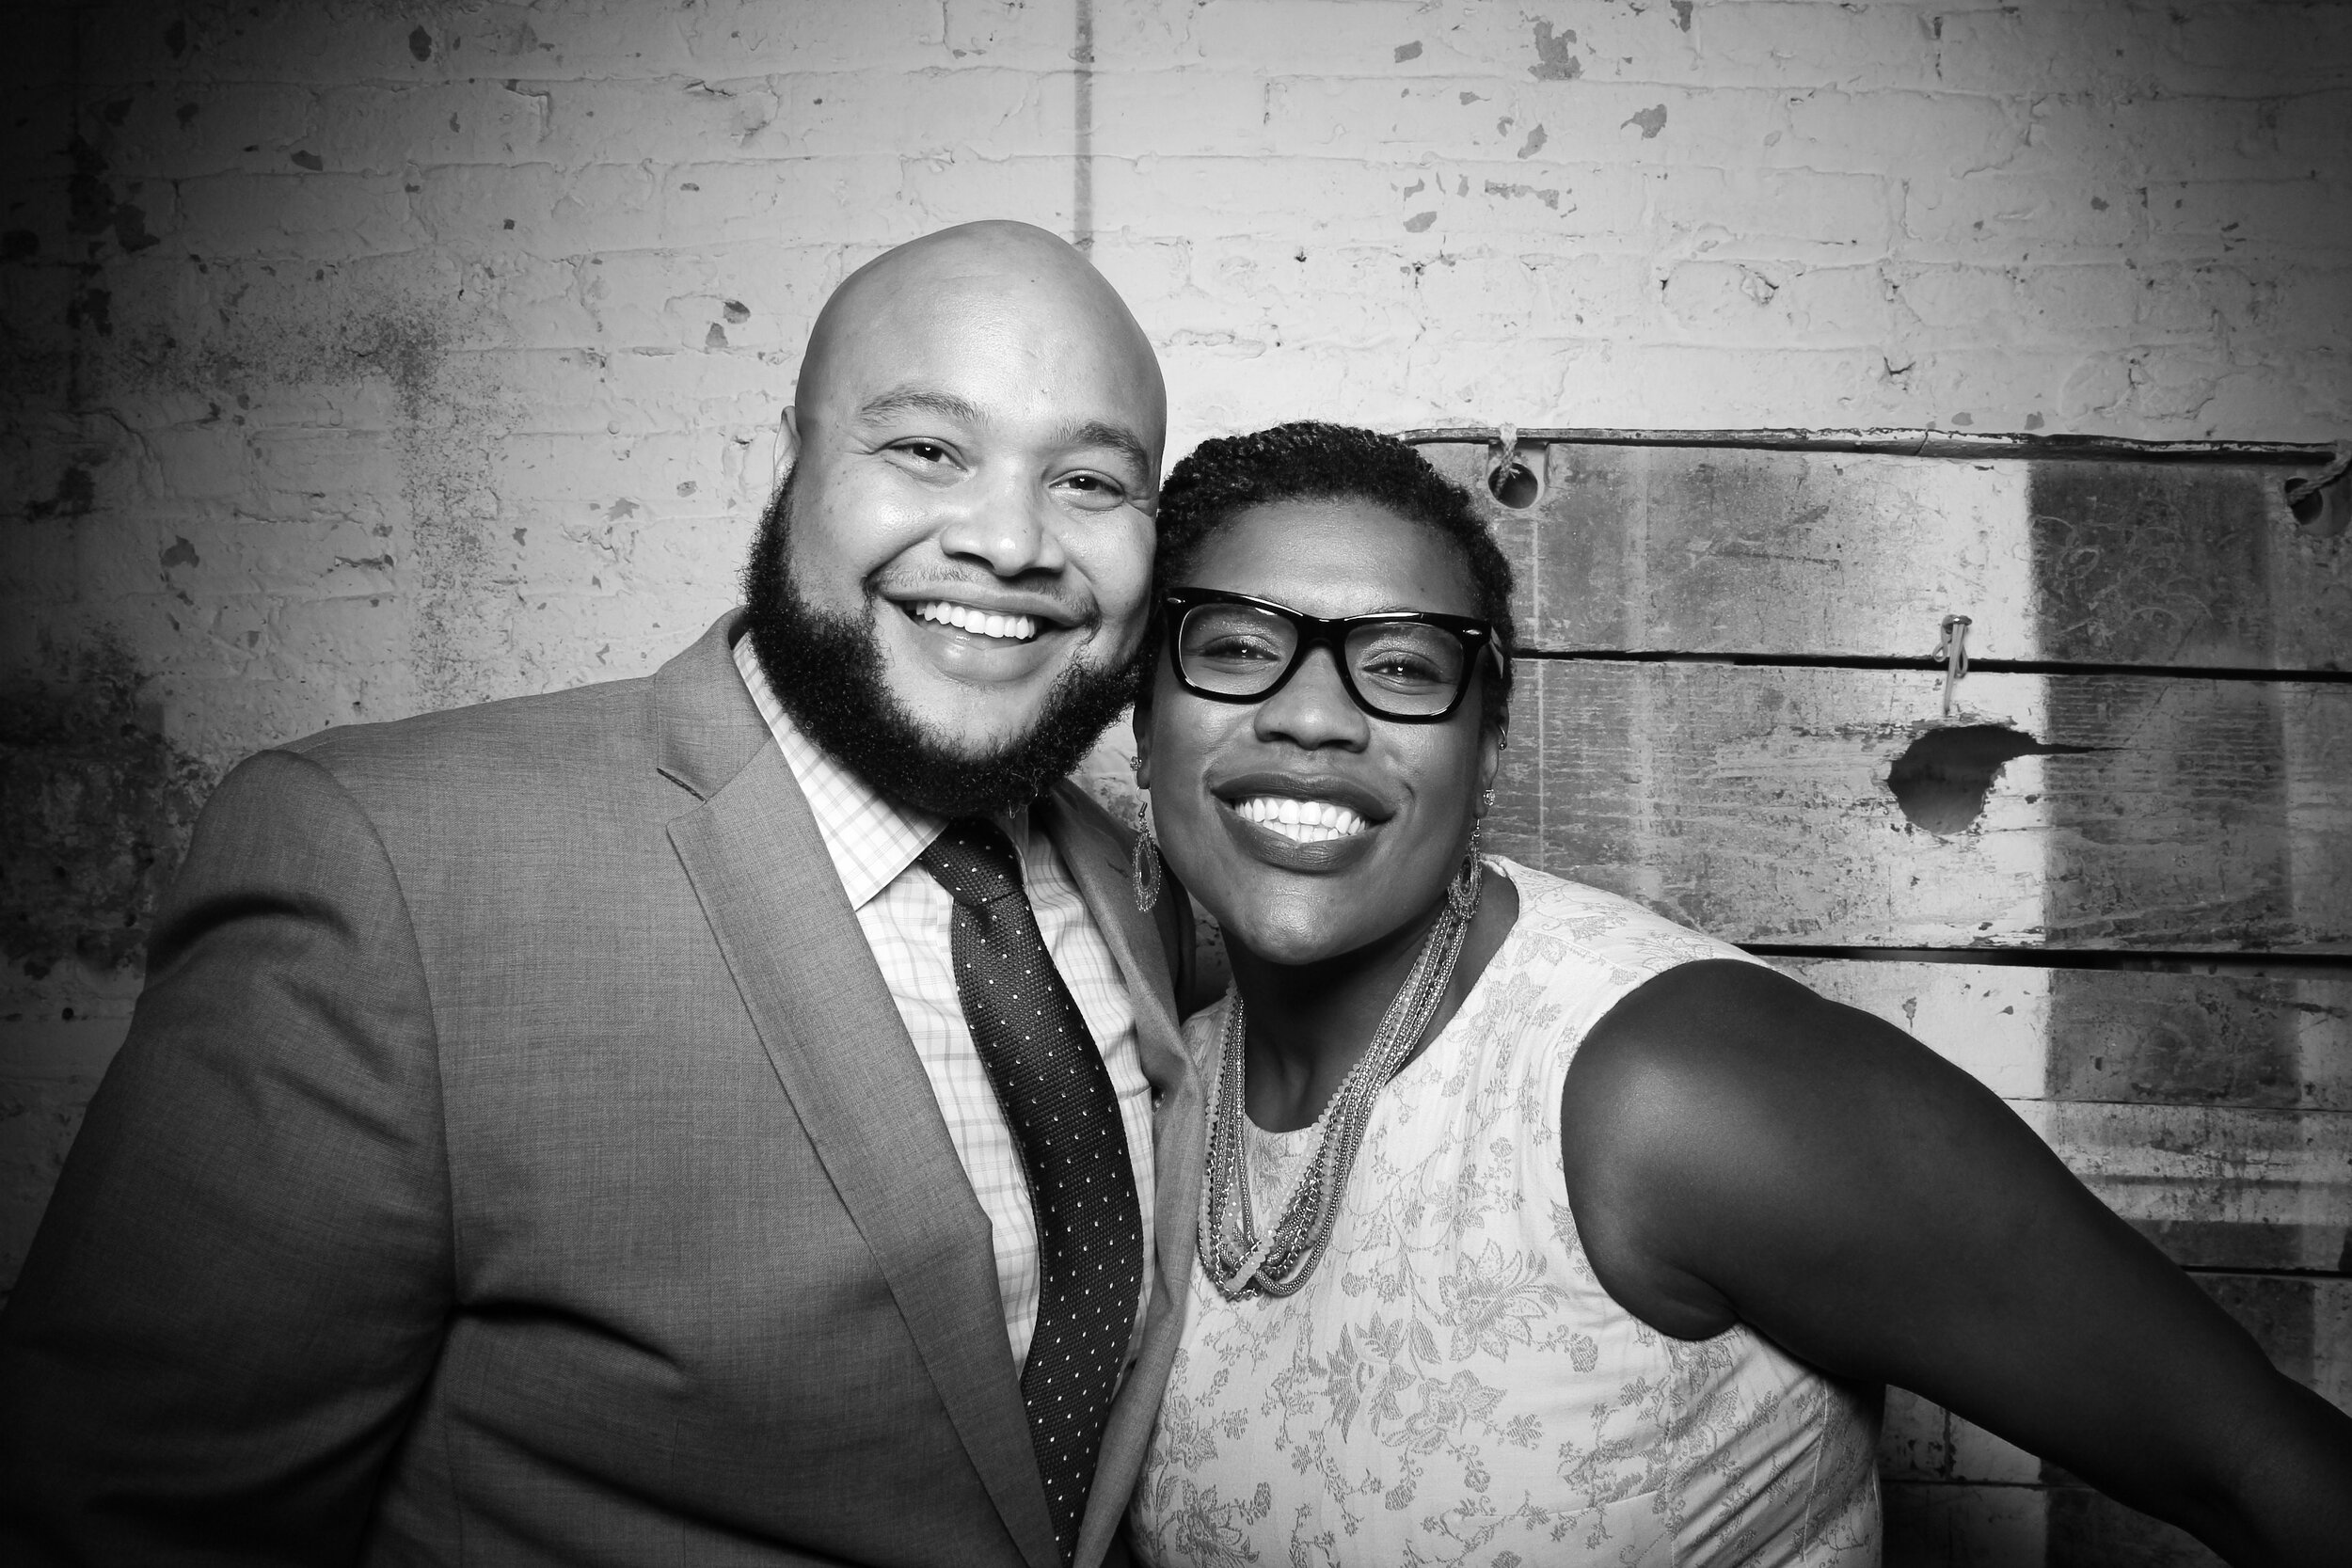 Chicago_Vintage_Wedding_Photobooth_Joinery_15.jpg